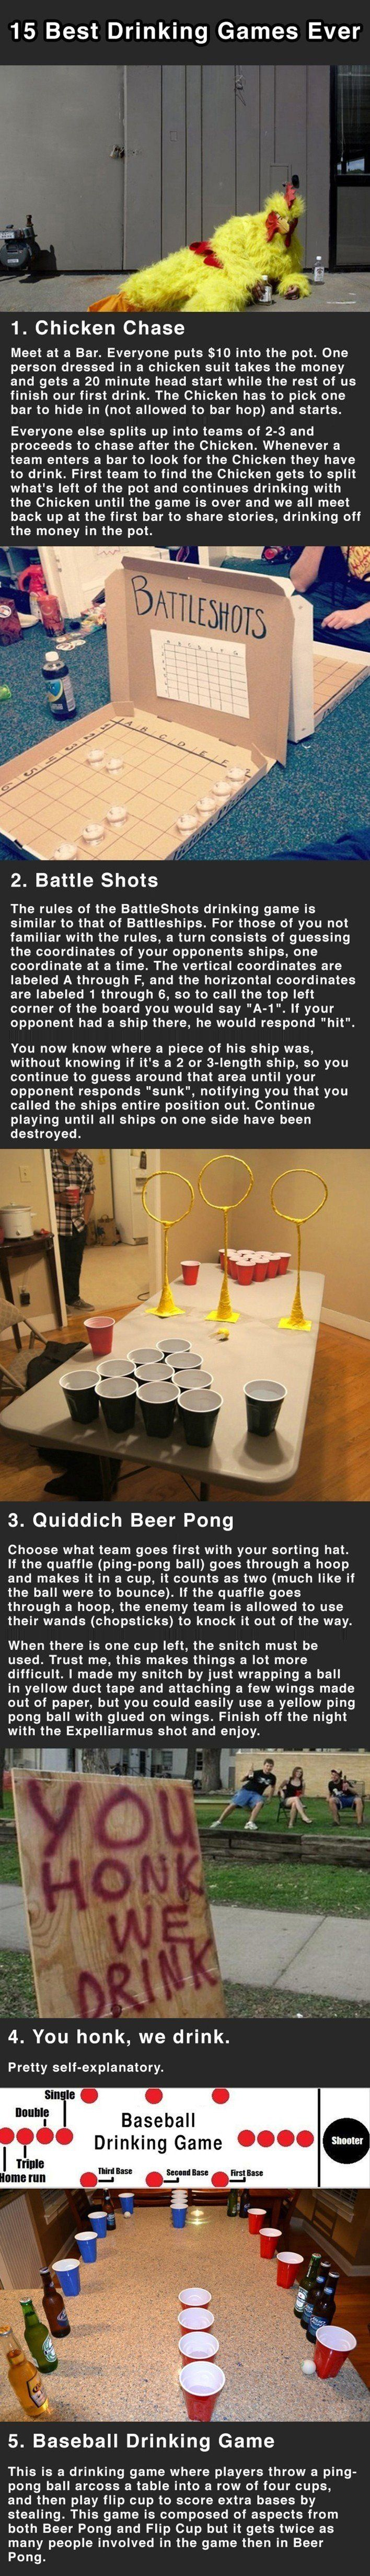 15 Best Drinking Games Ever. Number 7 Is Genius.